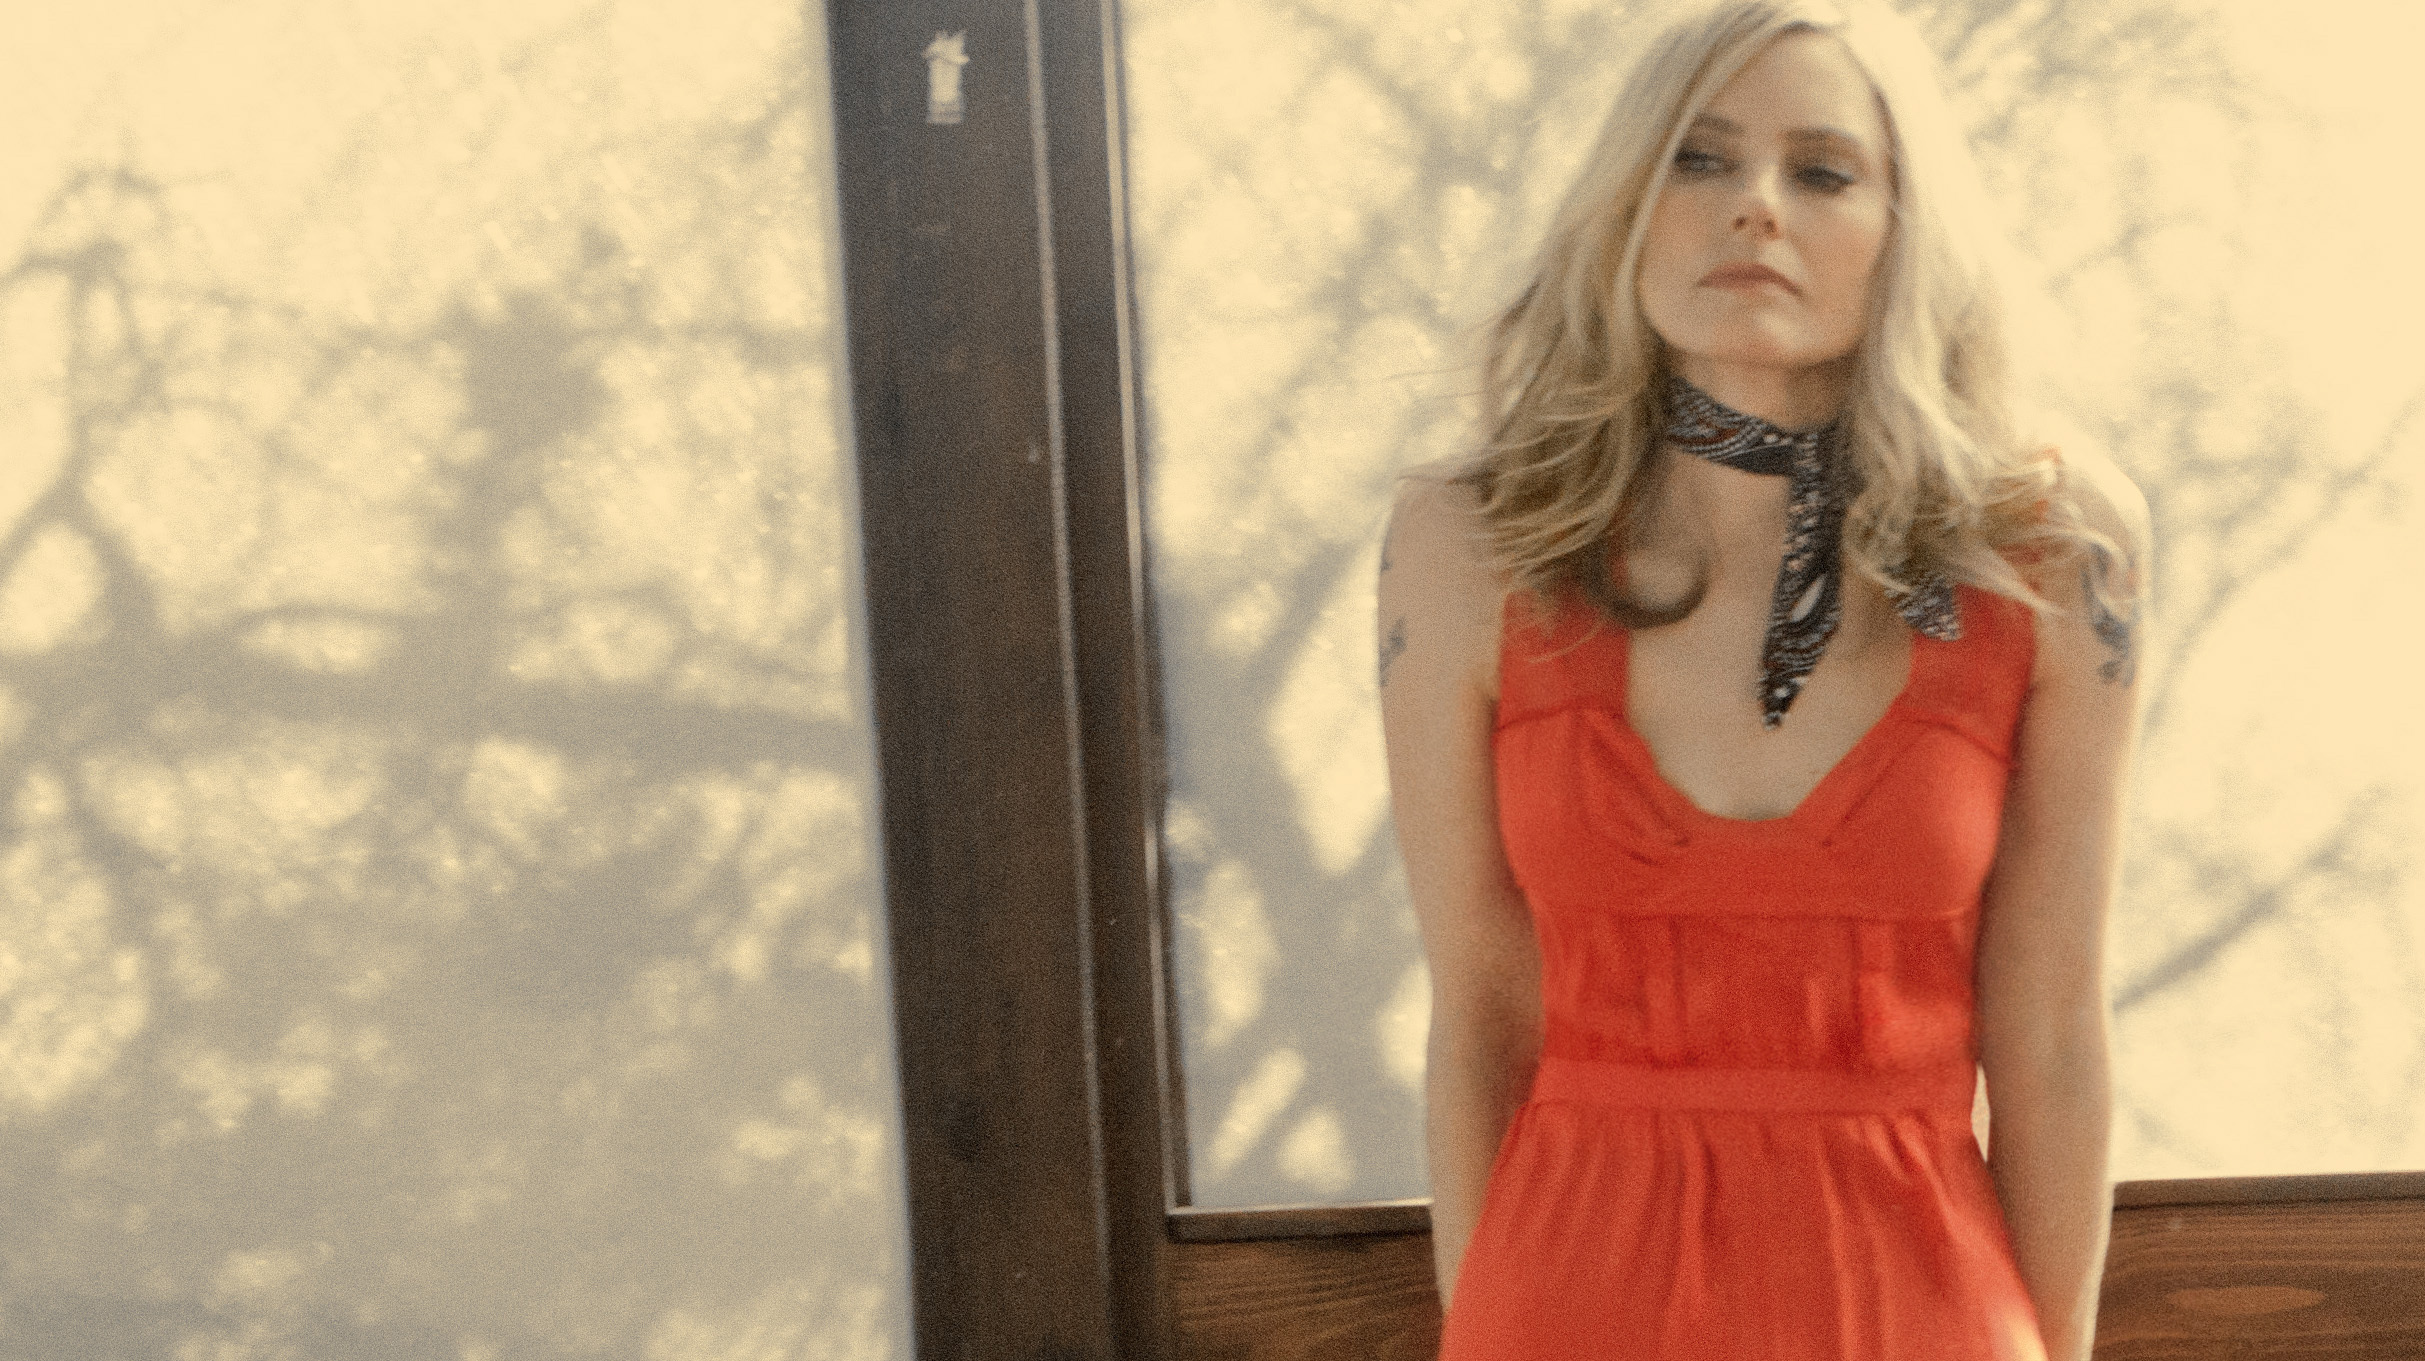 Discussion on this topic: Leilani Bishop USA 3 1995-1996, 1999, aimee-mann/